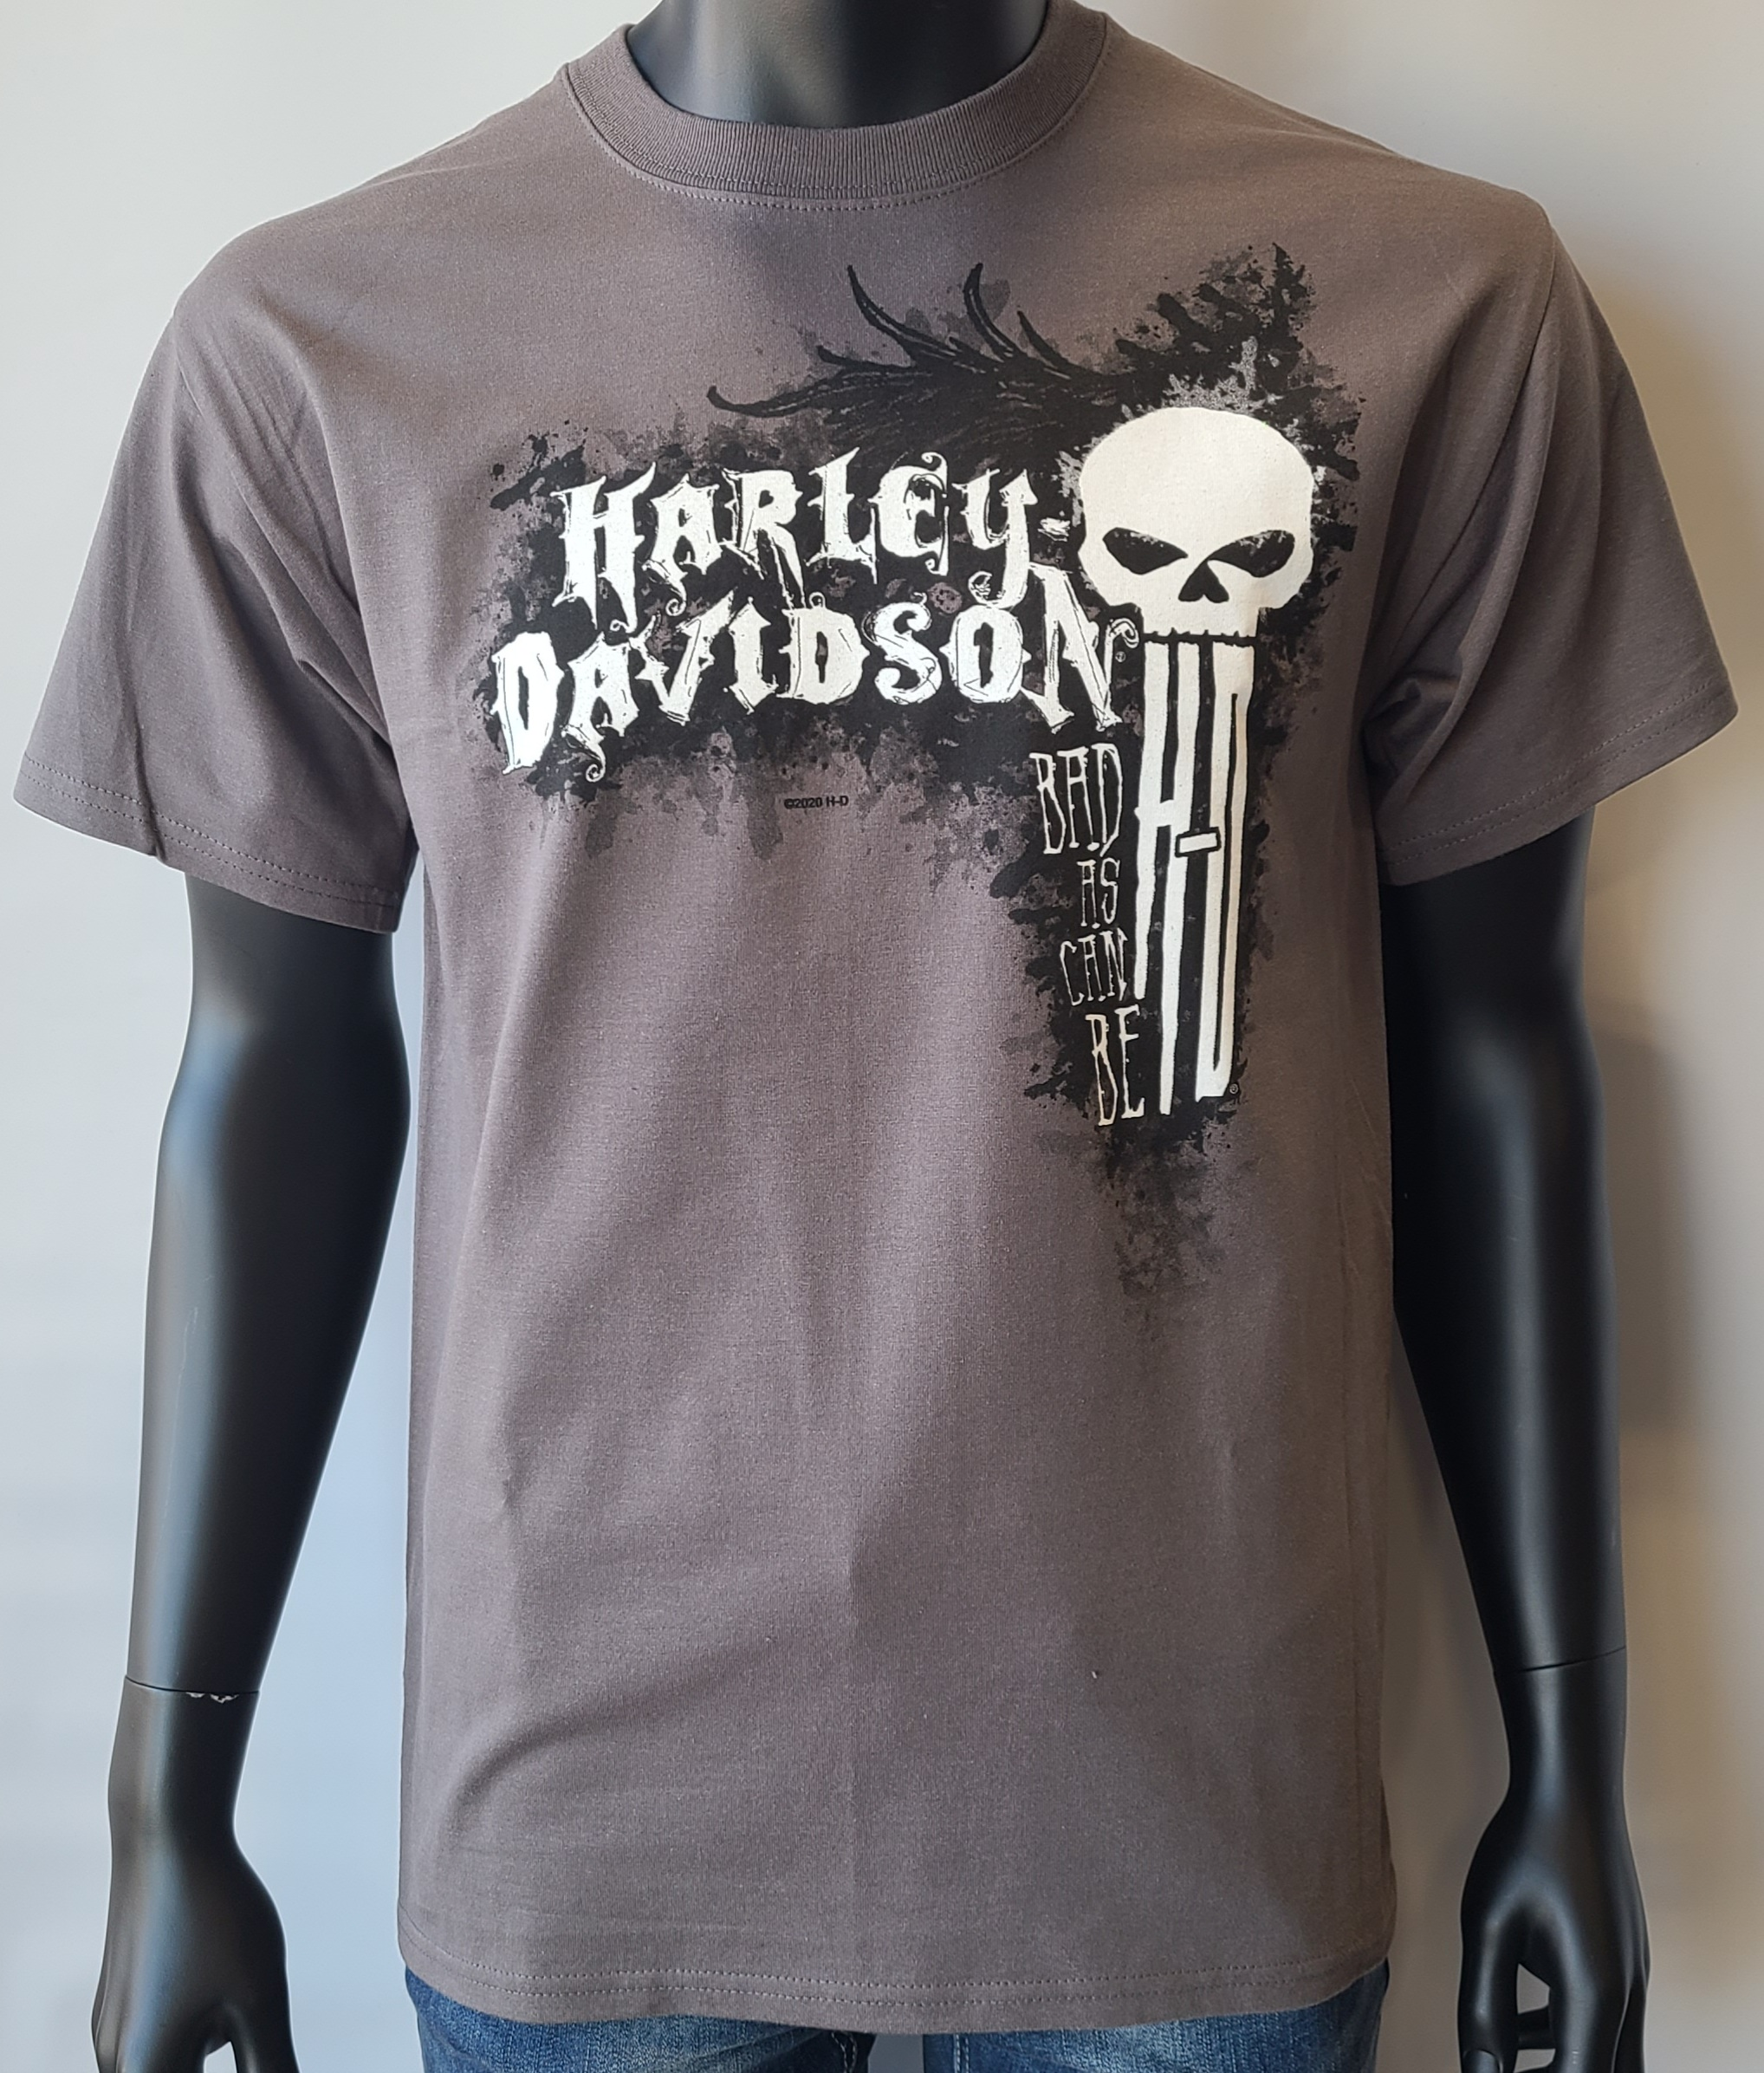 HARLEY DAVIDSON CAN BE BAD ADT T SMG